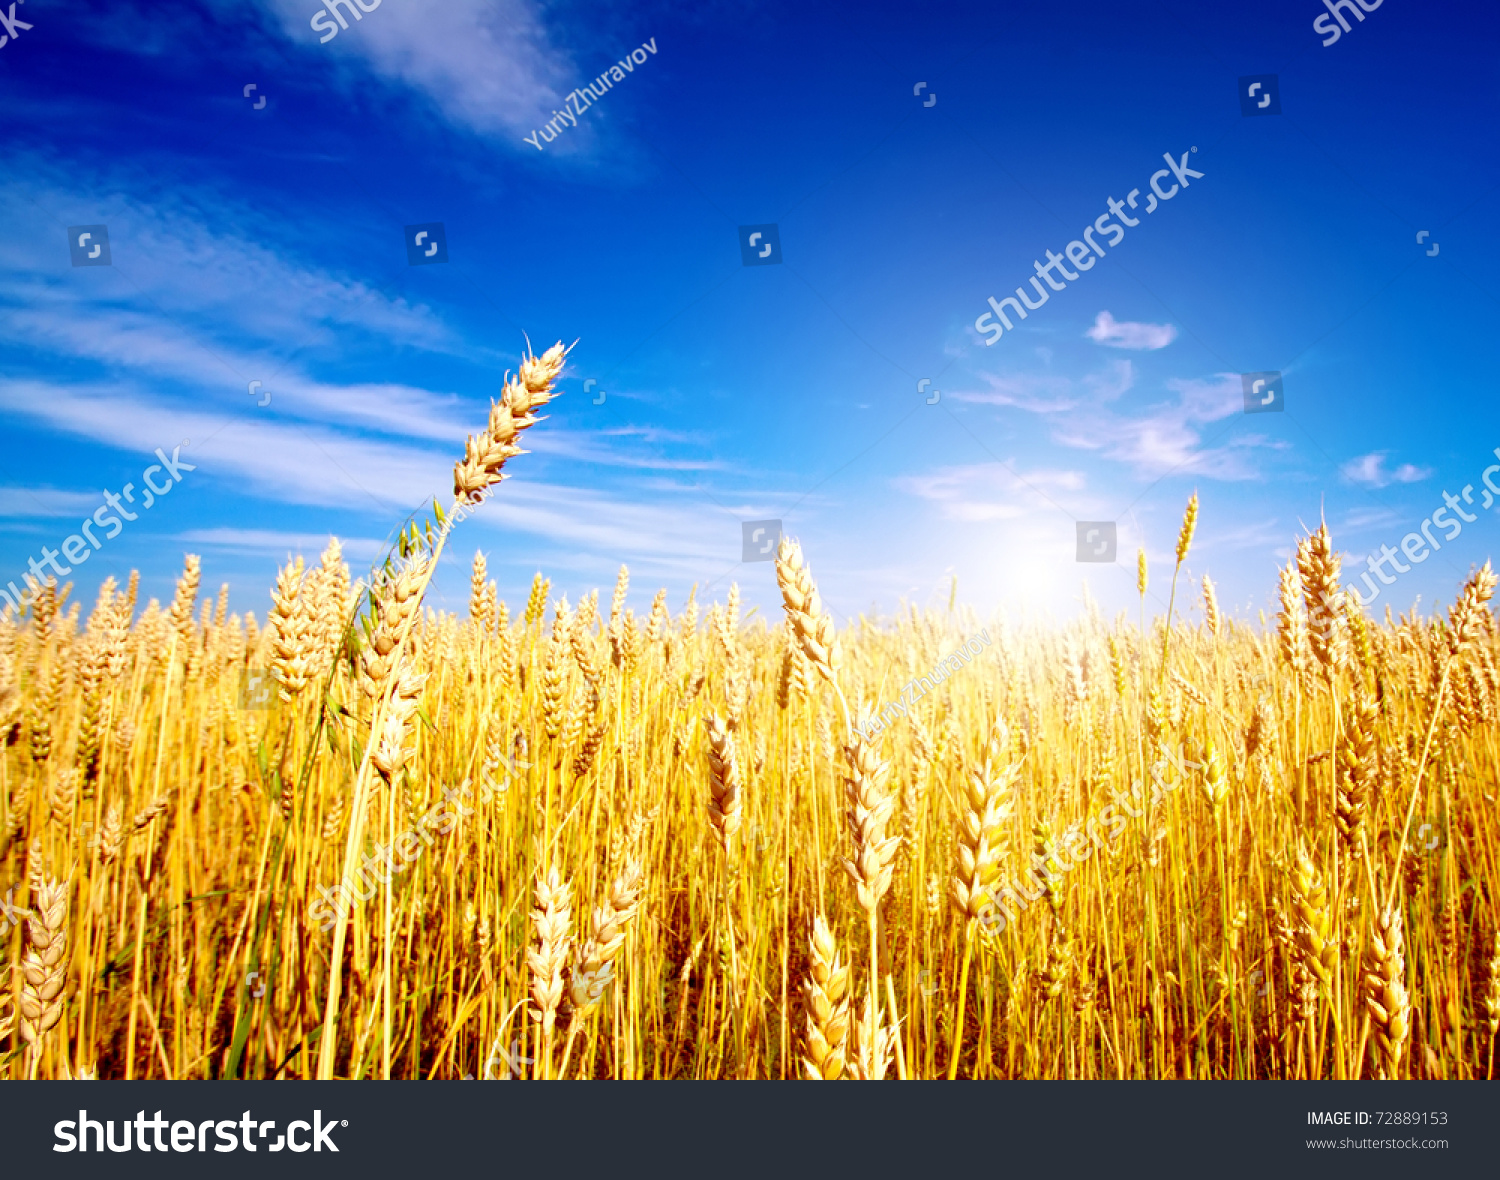 Golden Wheat Field Blue Sky Background Stock Photo 72889153 ...